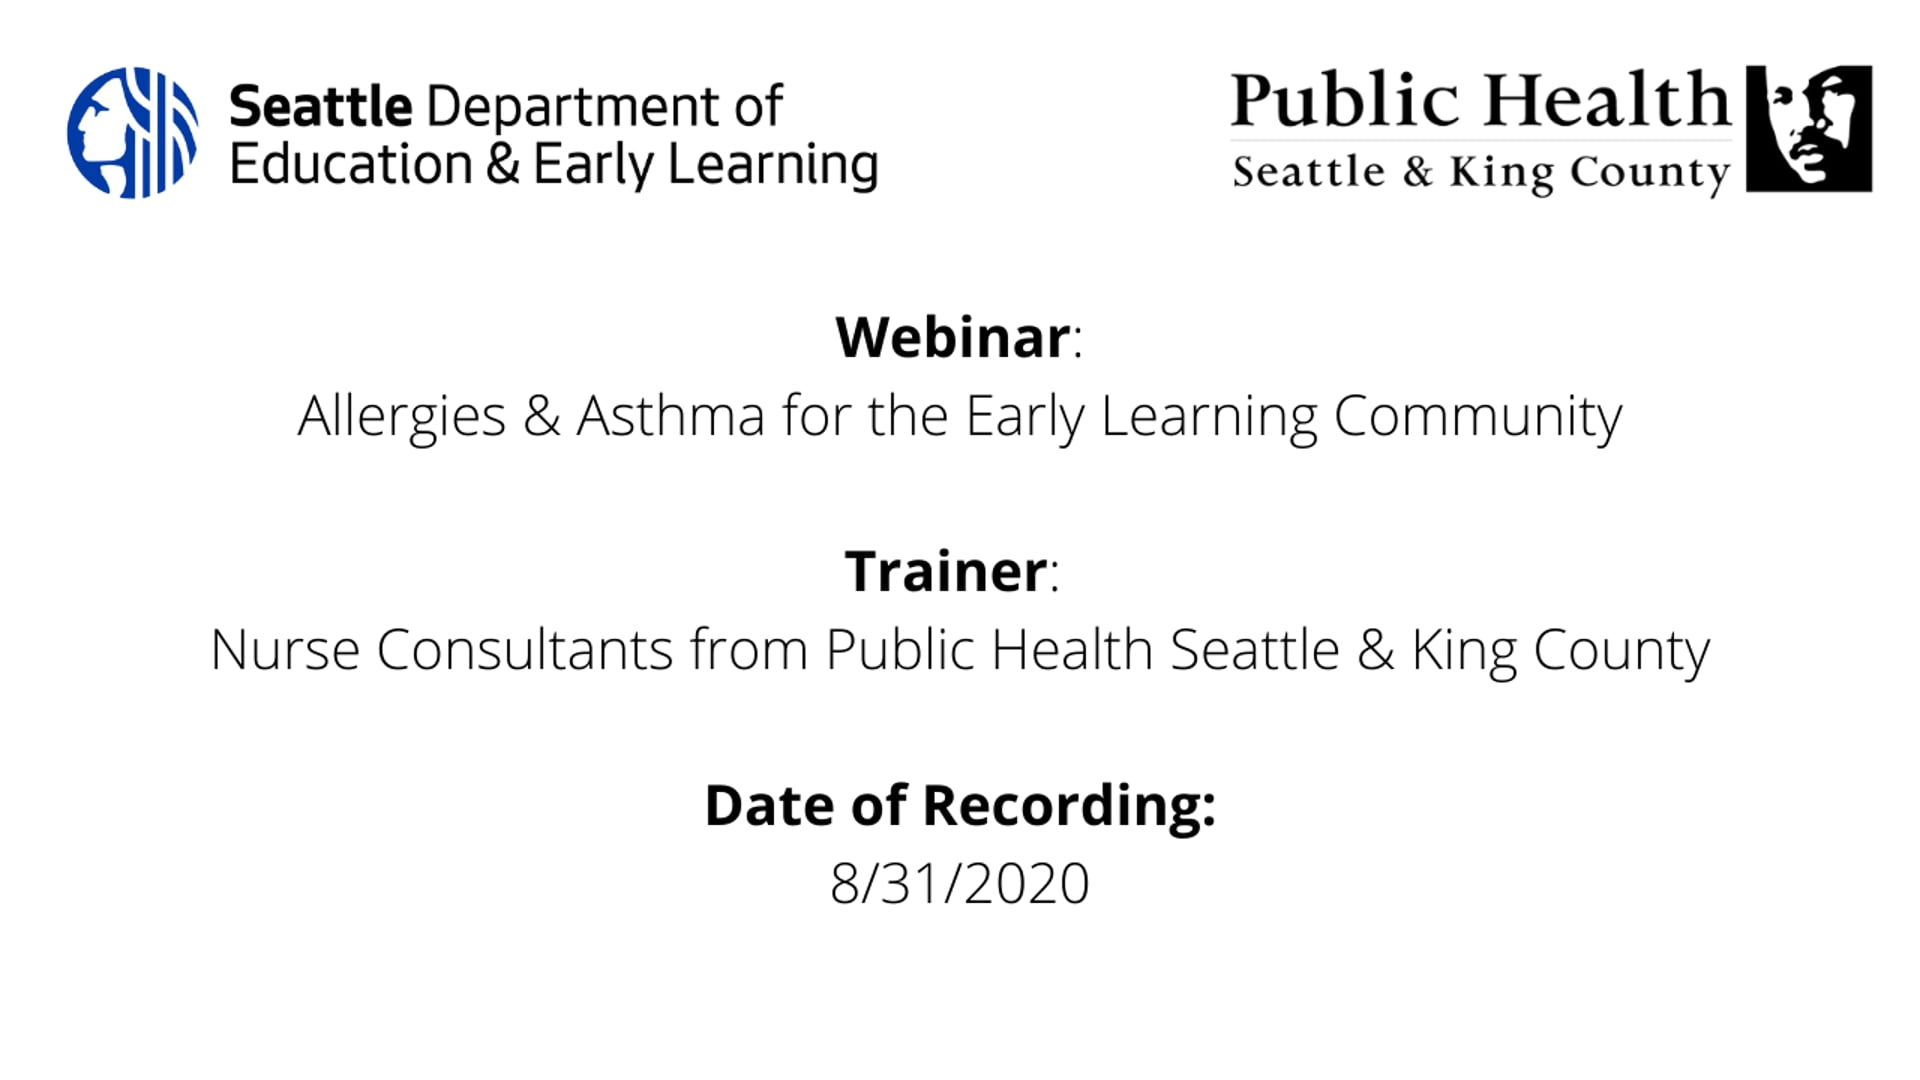 Allergies & Asthma for the Early Learning Community